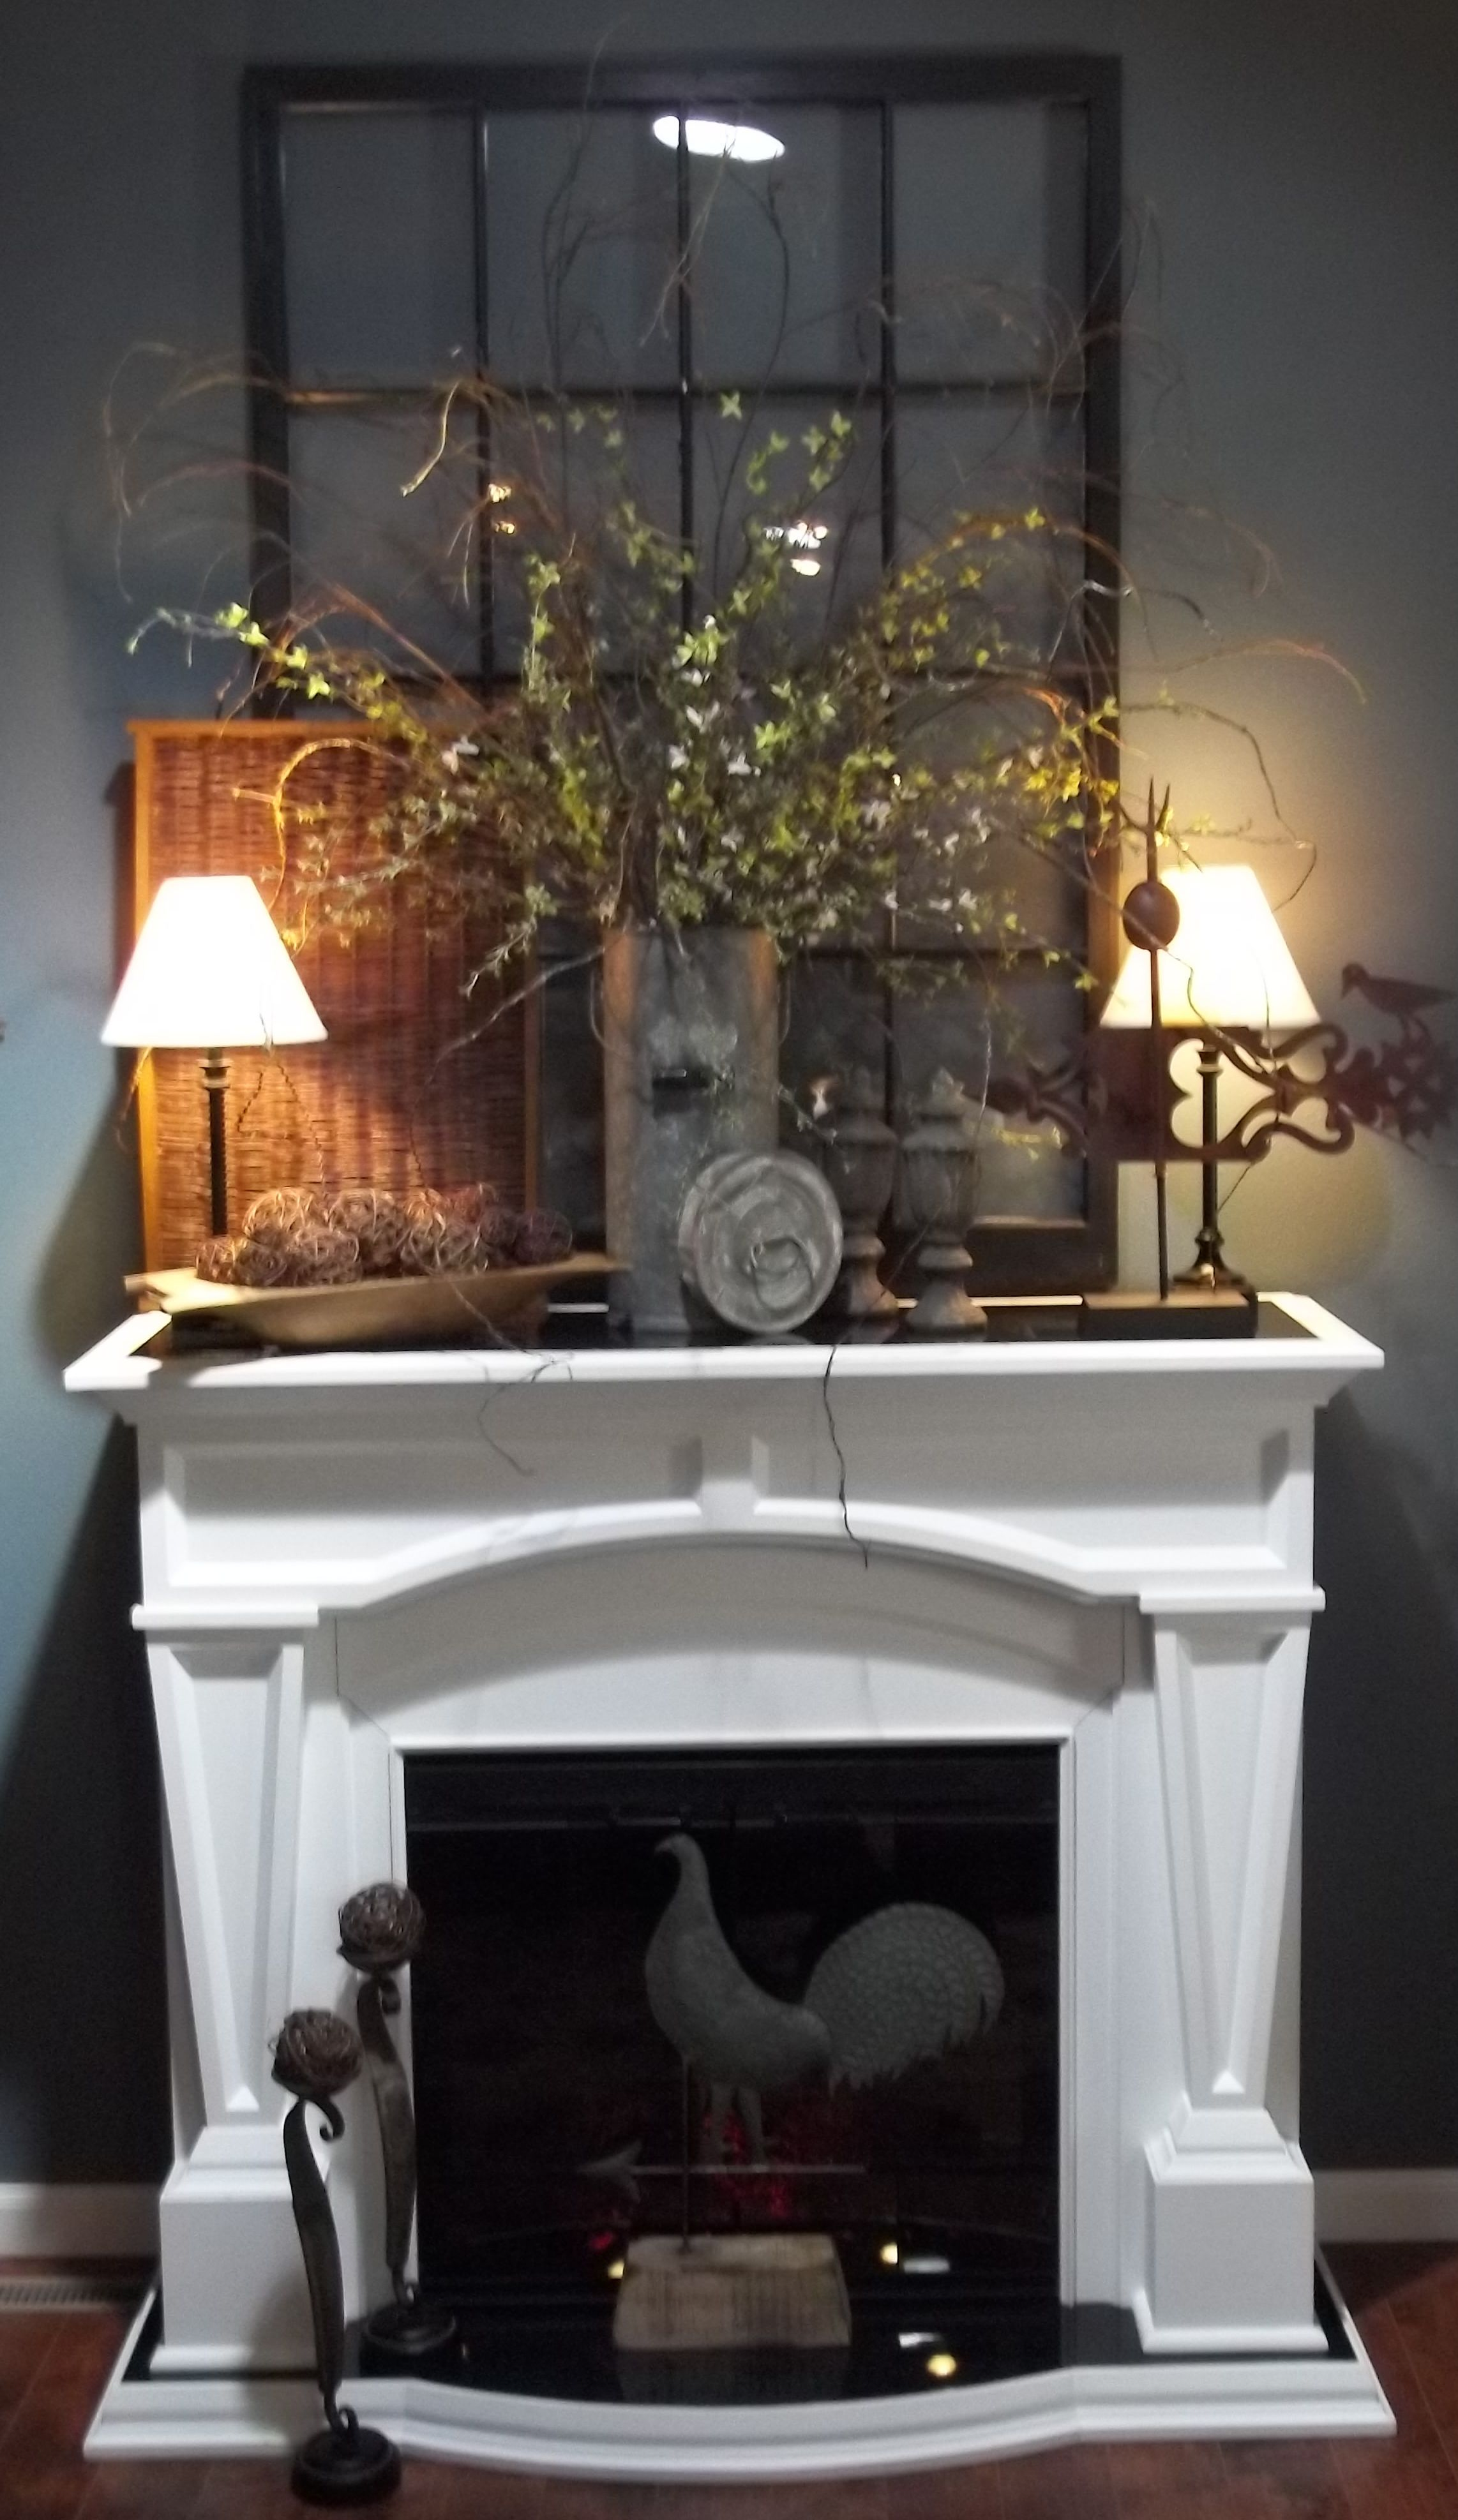 How Big Should Mirror Over Fireplace Be Luxury Pin On Home Sweet Home